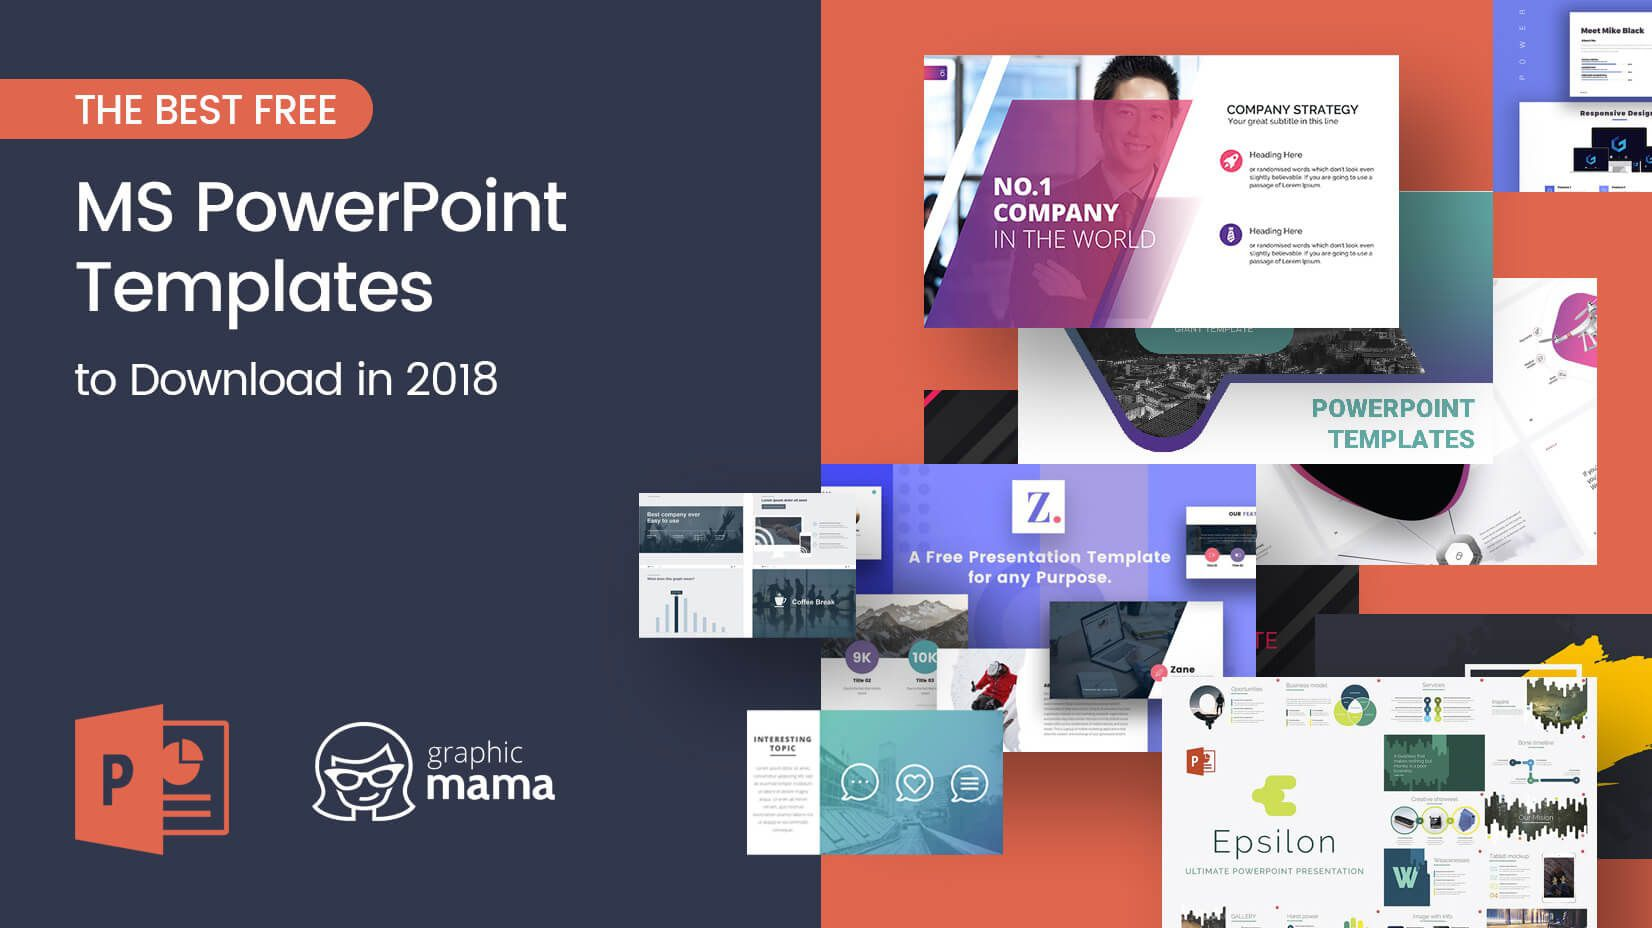 007 Exceptional Free Powerpoint Template Design Highest Quality  For Student Food BusinesFull